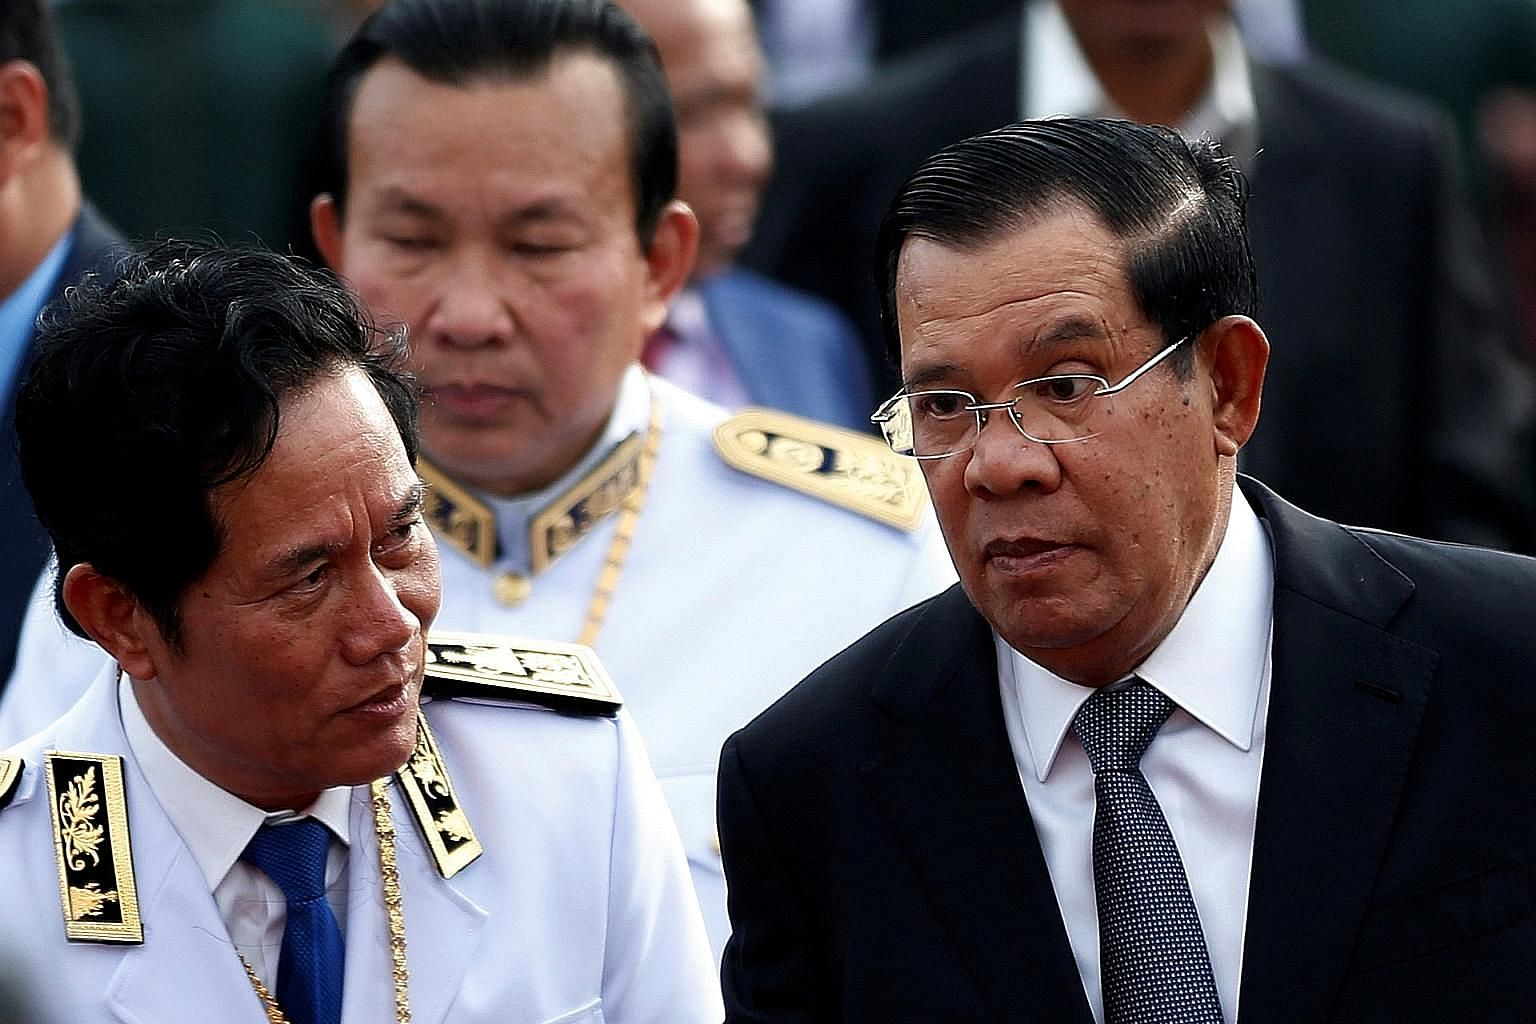 Cambodia's Prime Minister Hun Sen (right) attending a water festival in Phnom Penh. Asia's longest-serving leader has had to deal with discontent building among the country's 16 million people over a number of issues.